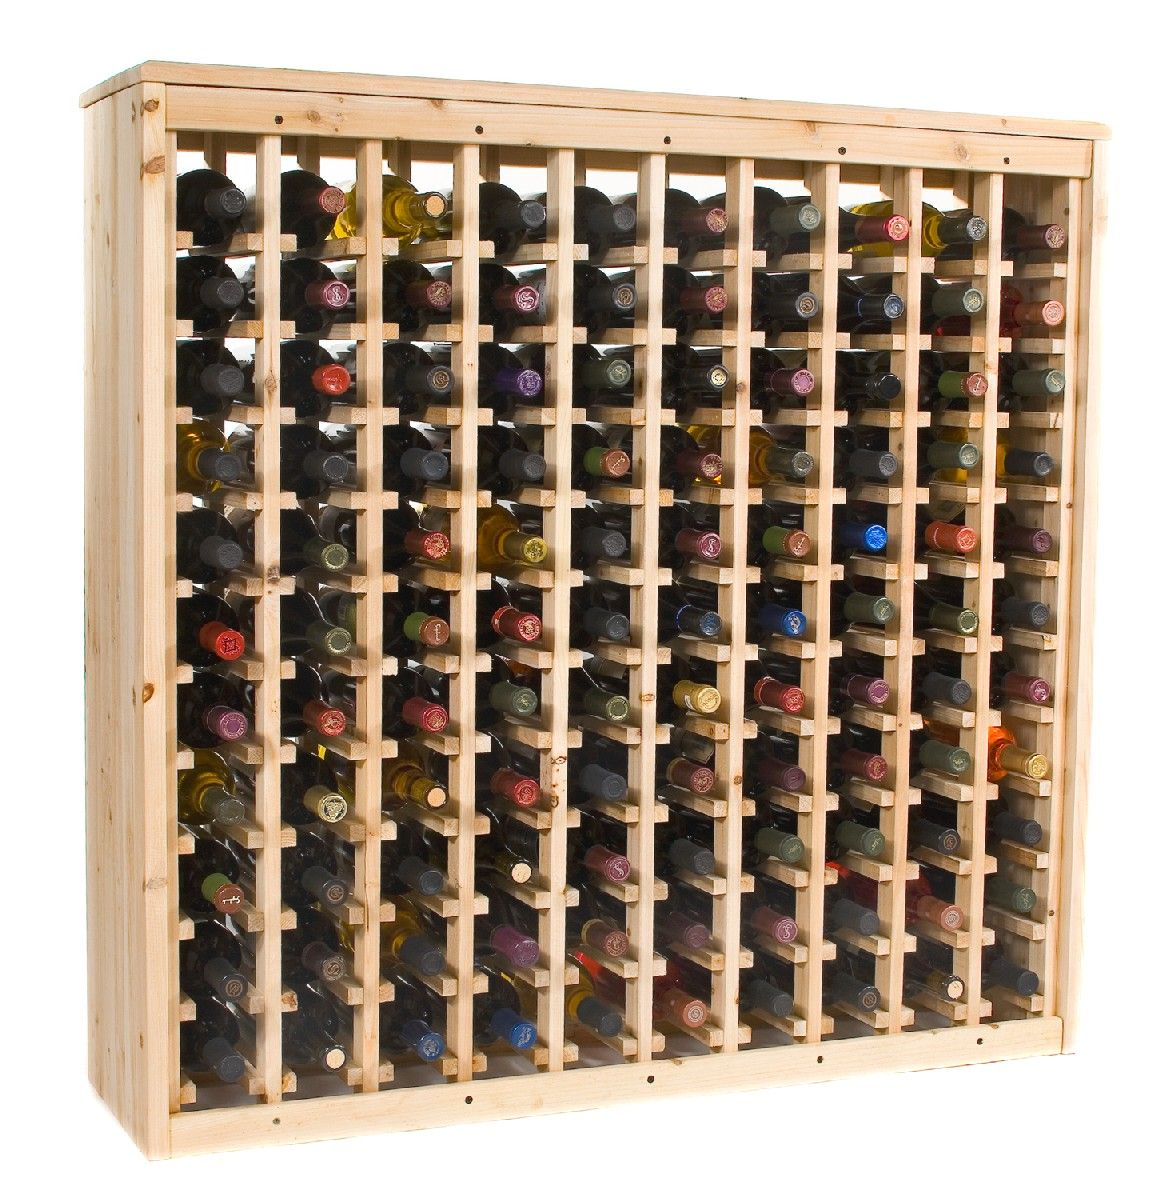 latest wine rack kits  wine racks  pinterest  wine rack wine  - diy wine rack plans you ll need six cross rails and six end panels homemade wineracks nice design easy build thanks for the great pictures wine stuff